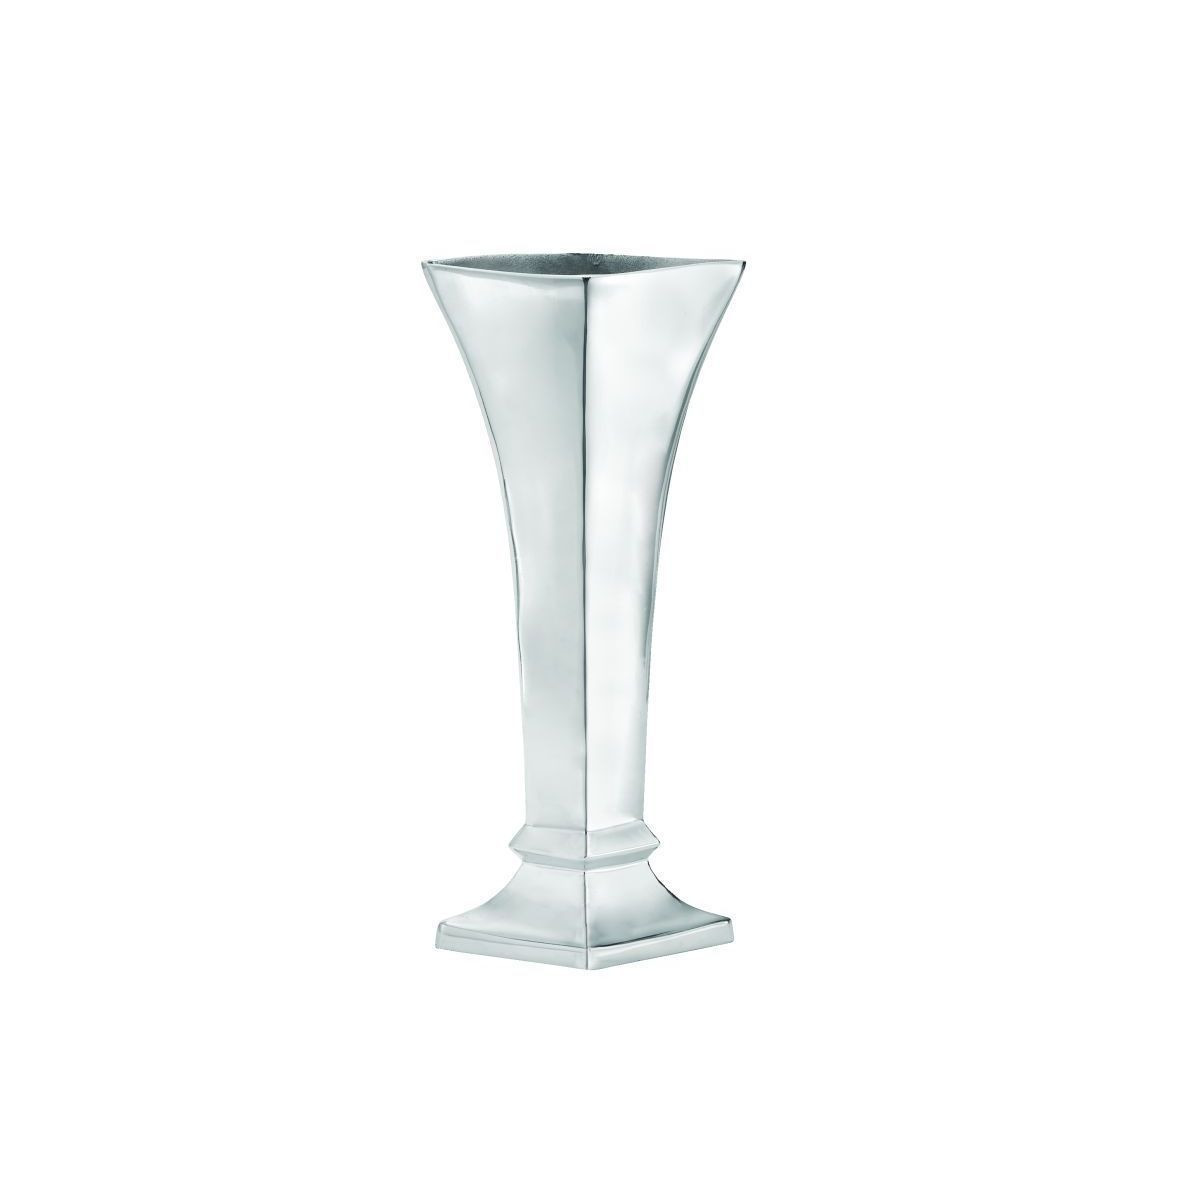 waterford lismore 8 crystal vase of nachtmann saphir 8 in crystal decorative vase in clear for studio 350 nickel aluminum 19 inches high x 9 inches wide flower vase